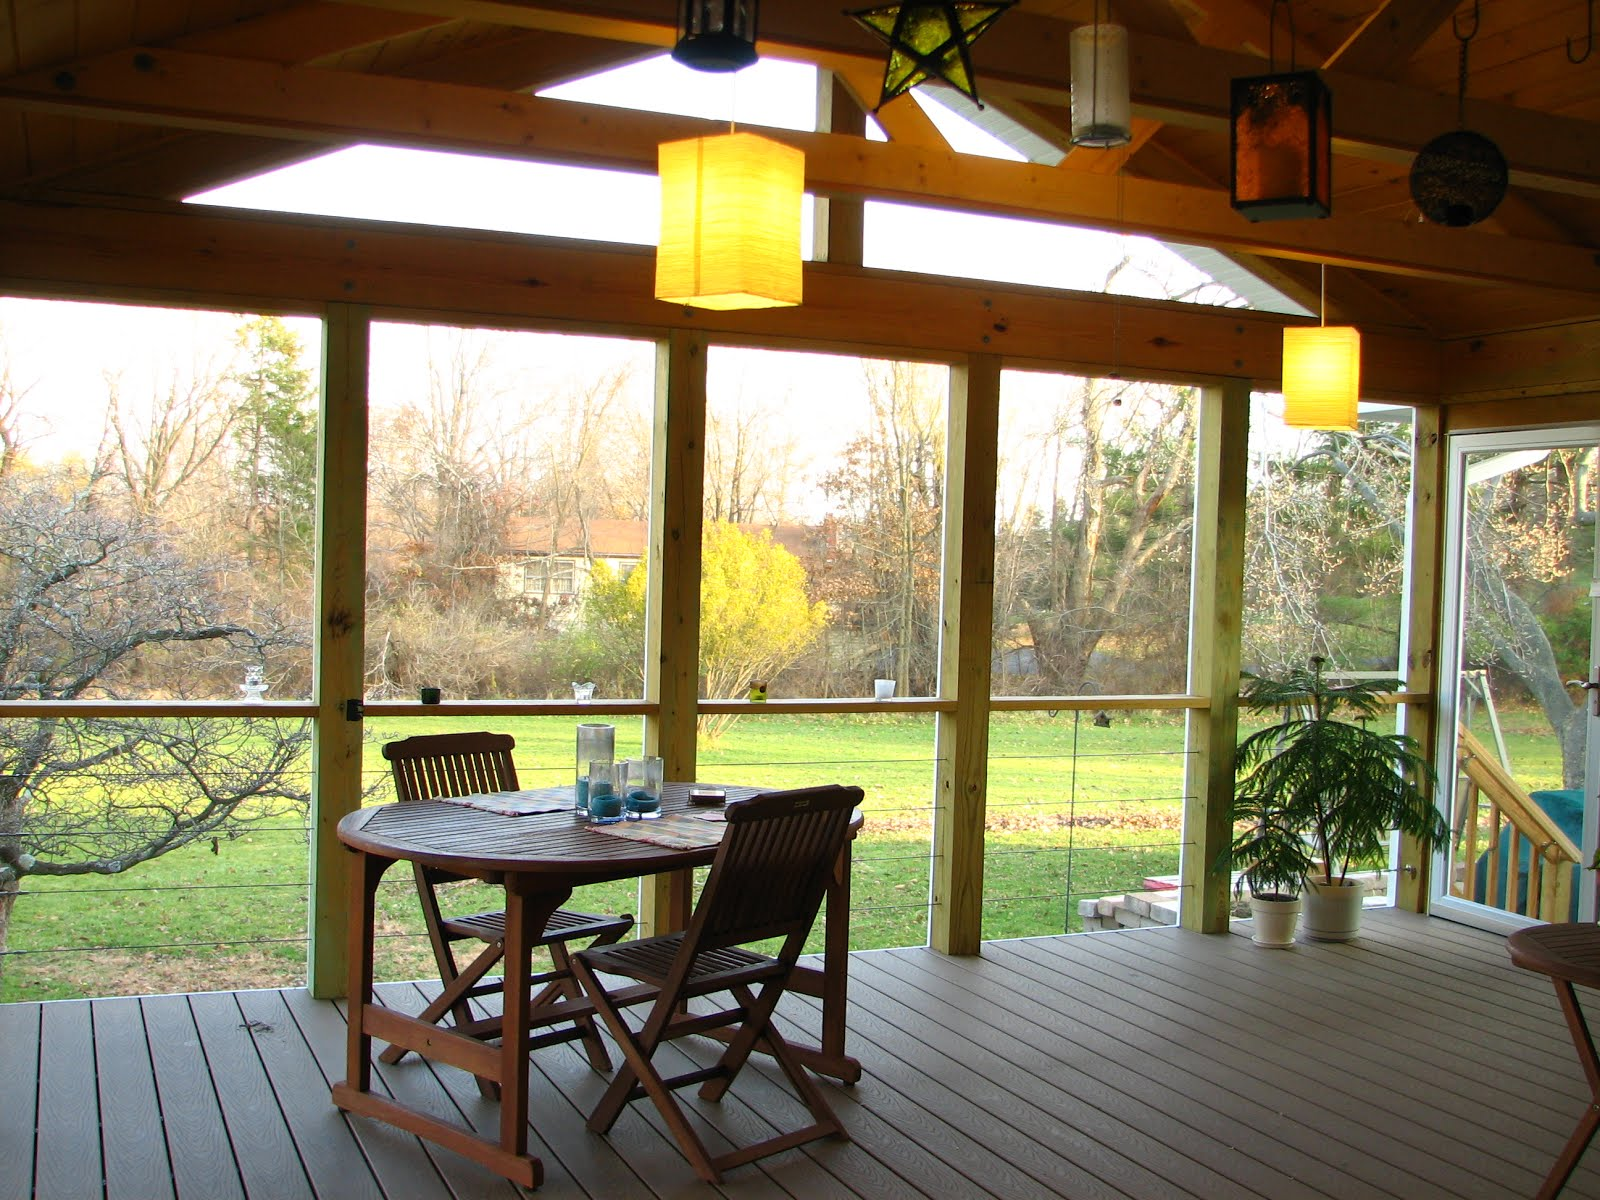 King Truss Screened Porch